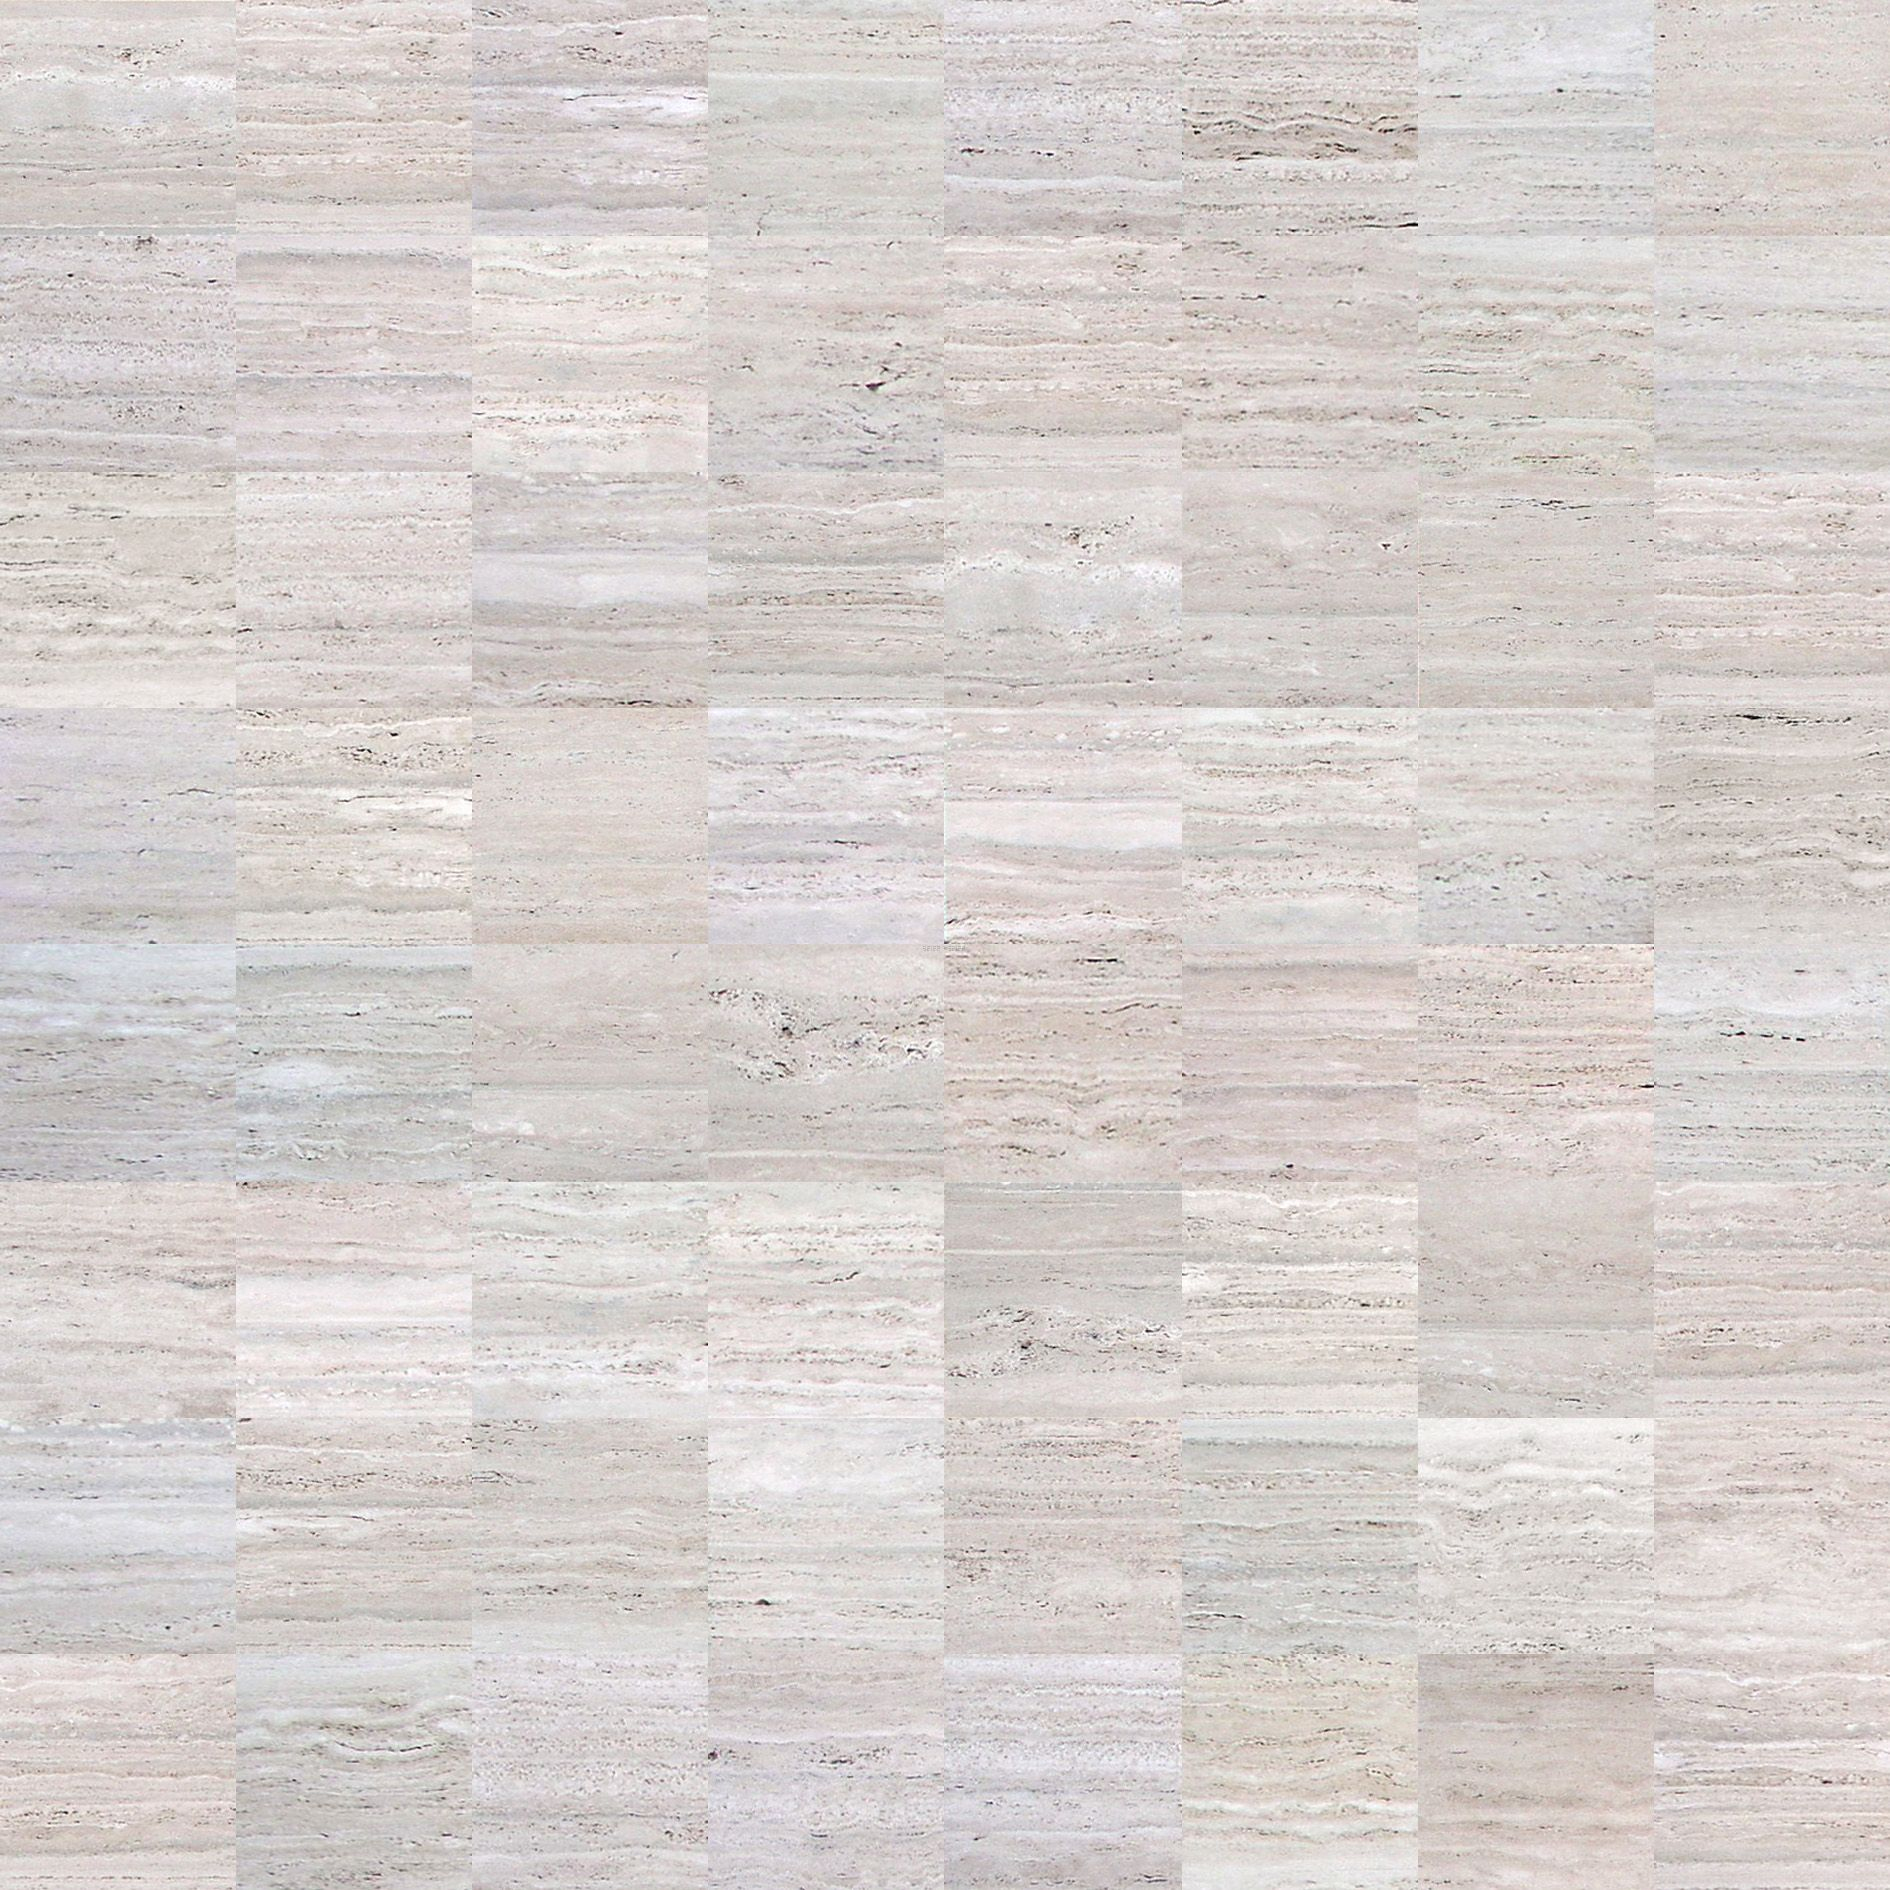 Texture Carrelage Moderne Impressionnant Photographie Travertine Stone Architextures Materials